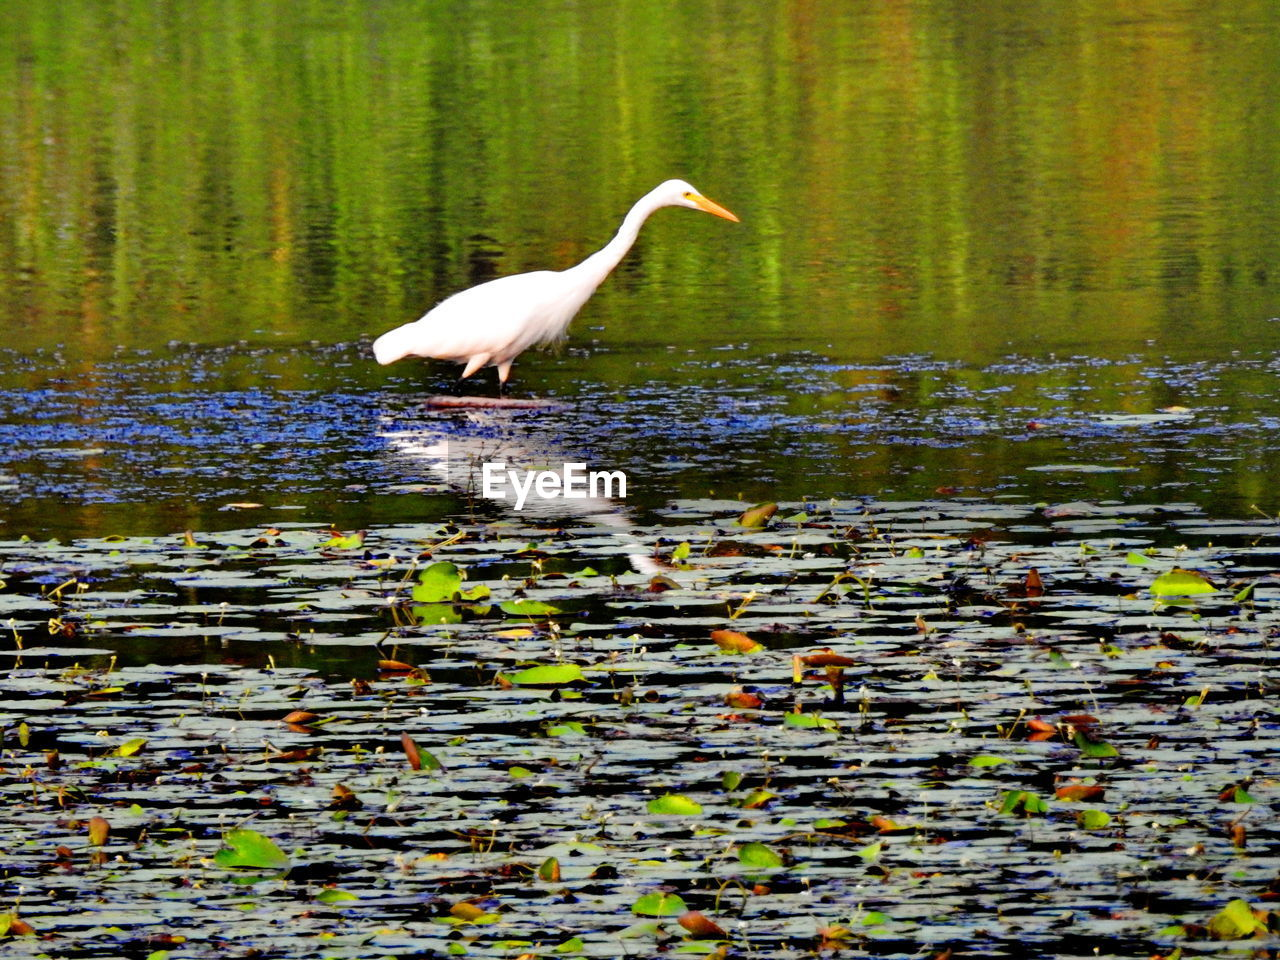 one animal, animals in the wild, water, lake, animal themes, bird, animal wildlife, nature, reflection, great egret, day, heron, egret, wading, outdoors, no people, plant, beauty in nature, full length